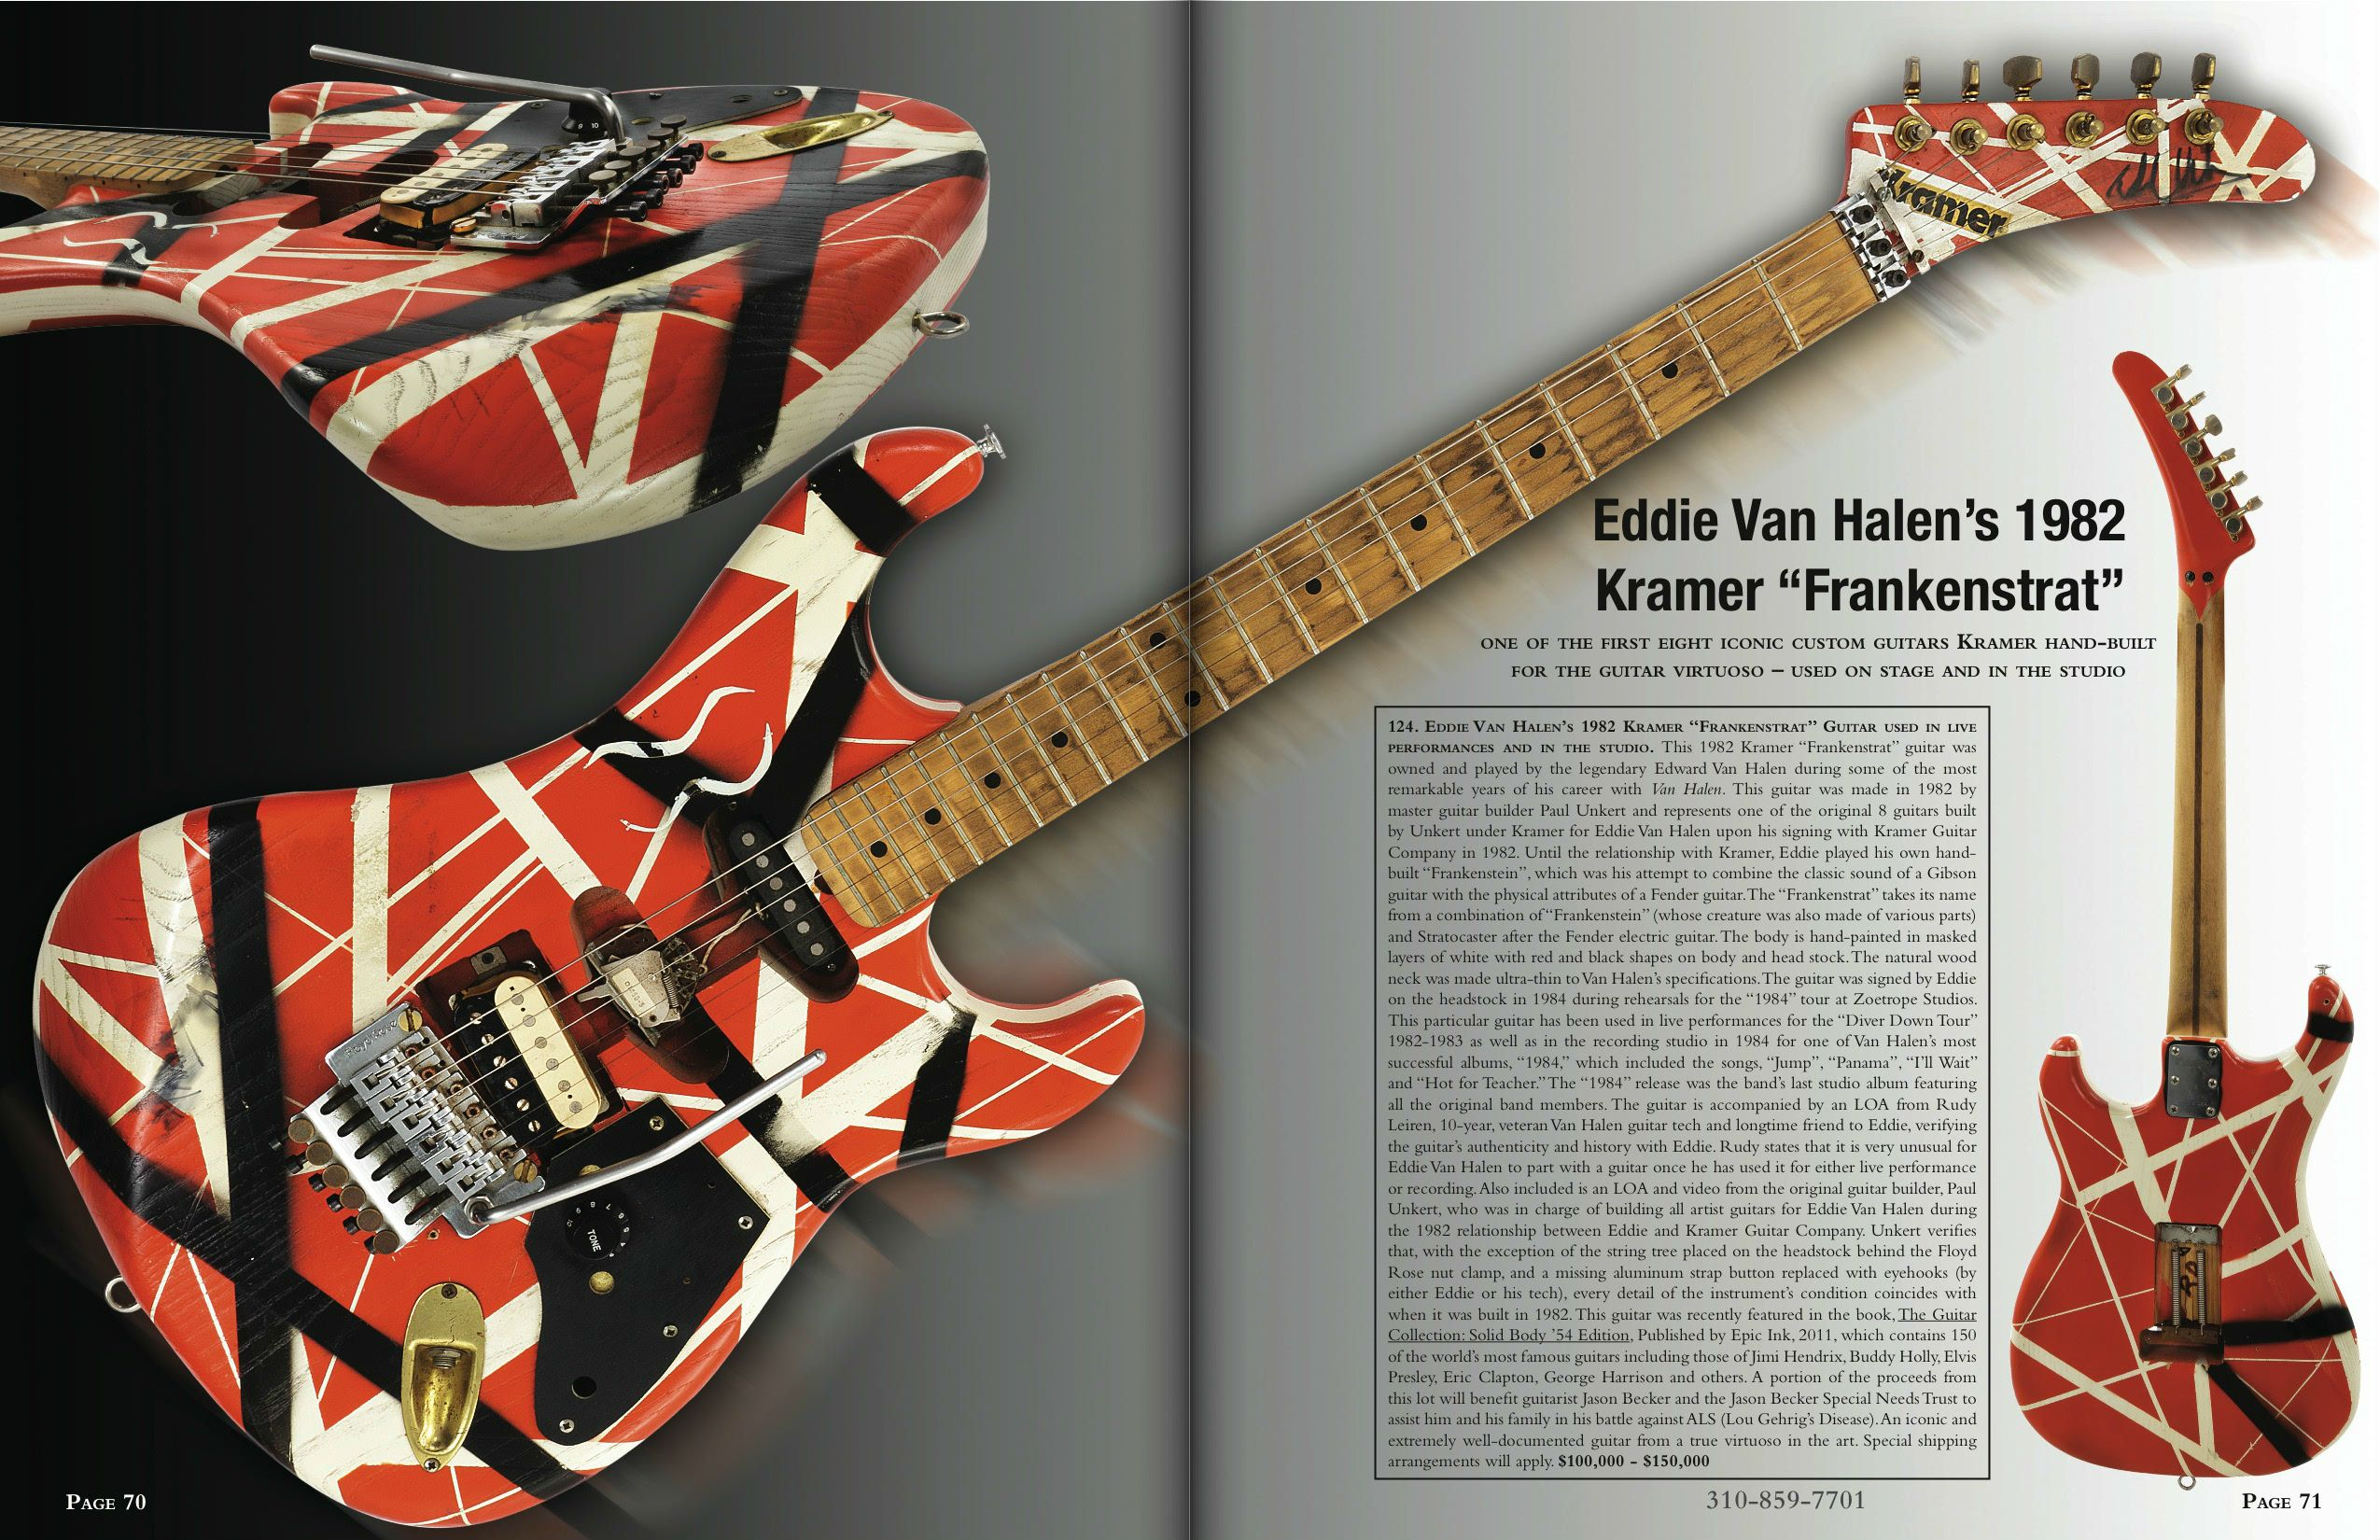 Pin By Leonardus On Eddie Van Halen Eddie Van Halen Van Halen Music Guitar